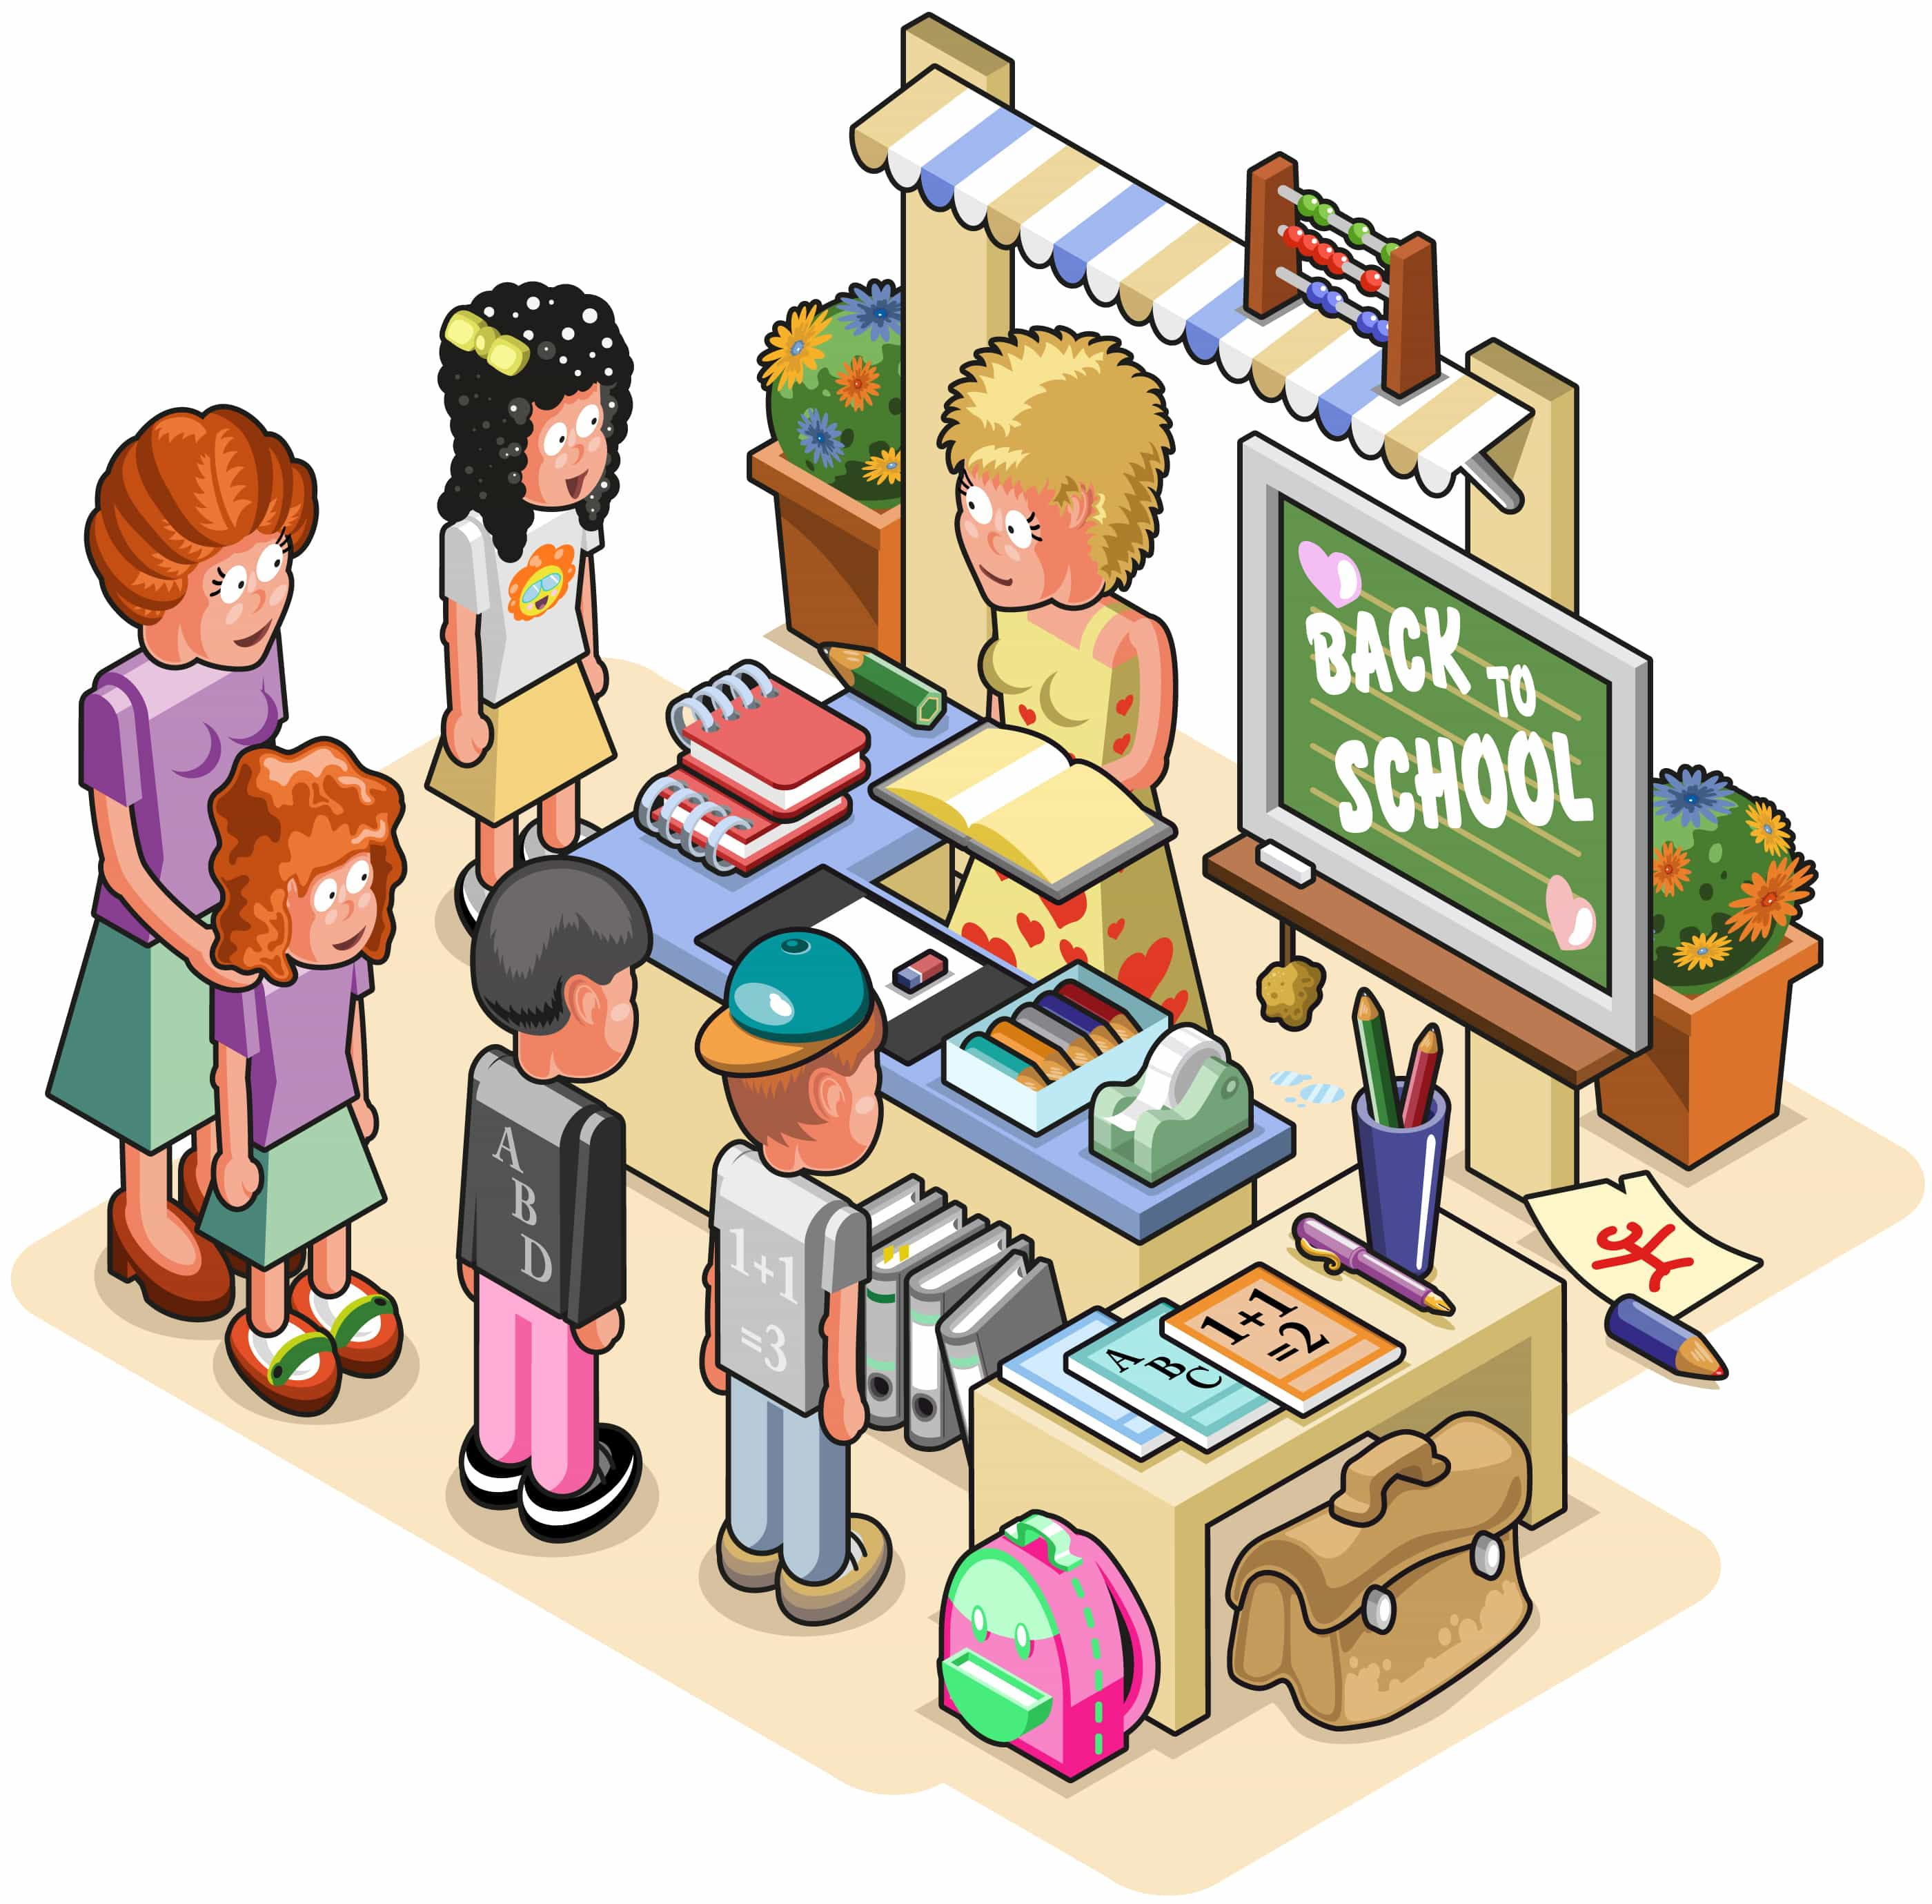 How You Can Save Money On Back To Back When Shopping For School?